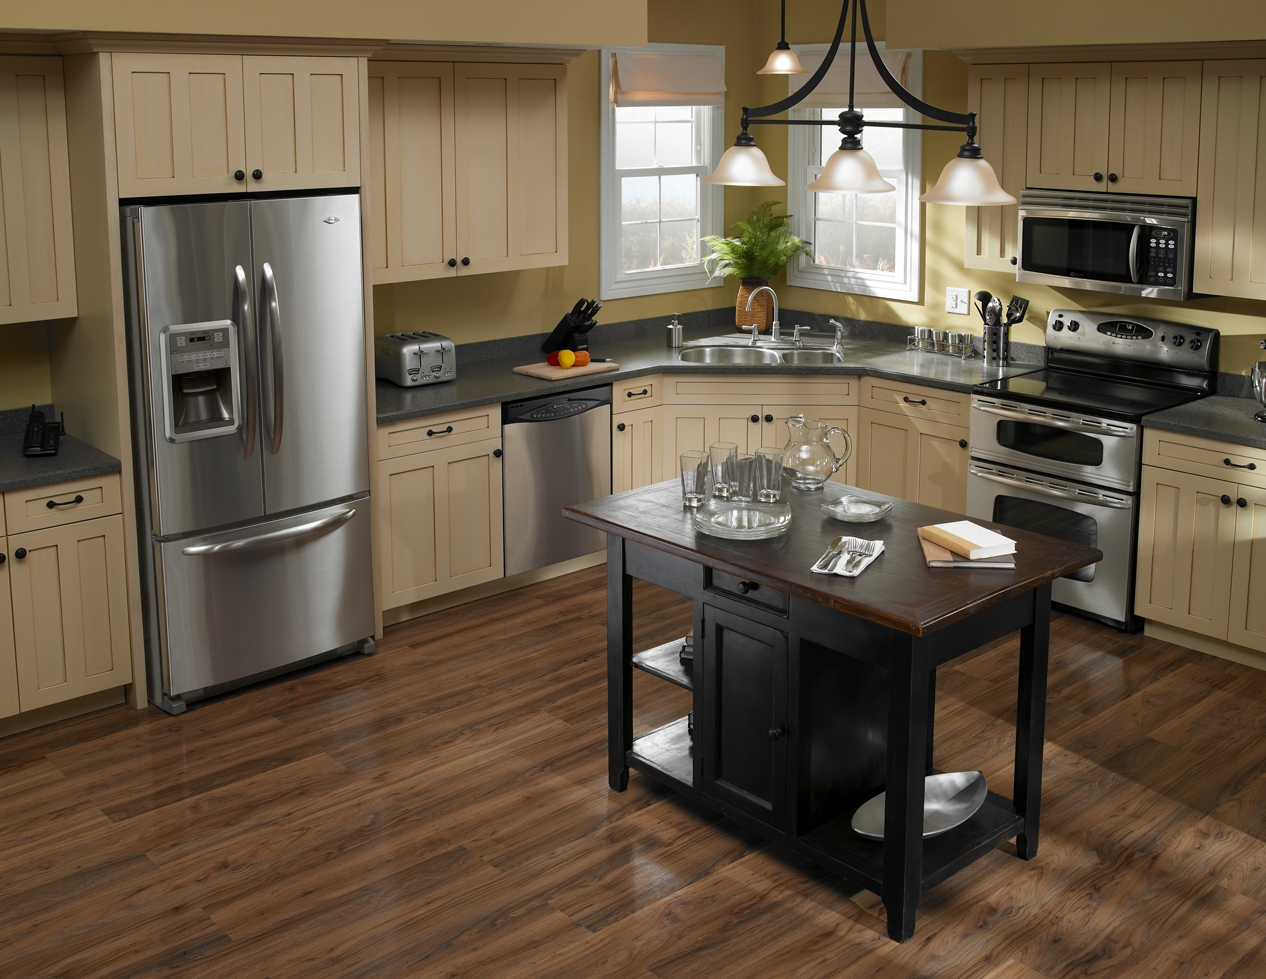 Use-MayTag-For-Your-Kitchen-Home-And-Office-Appliances